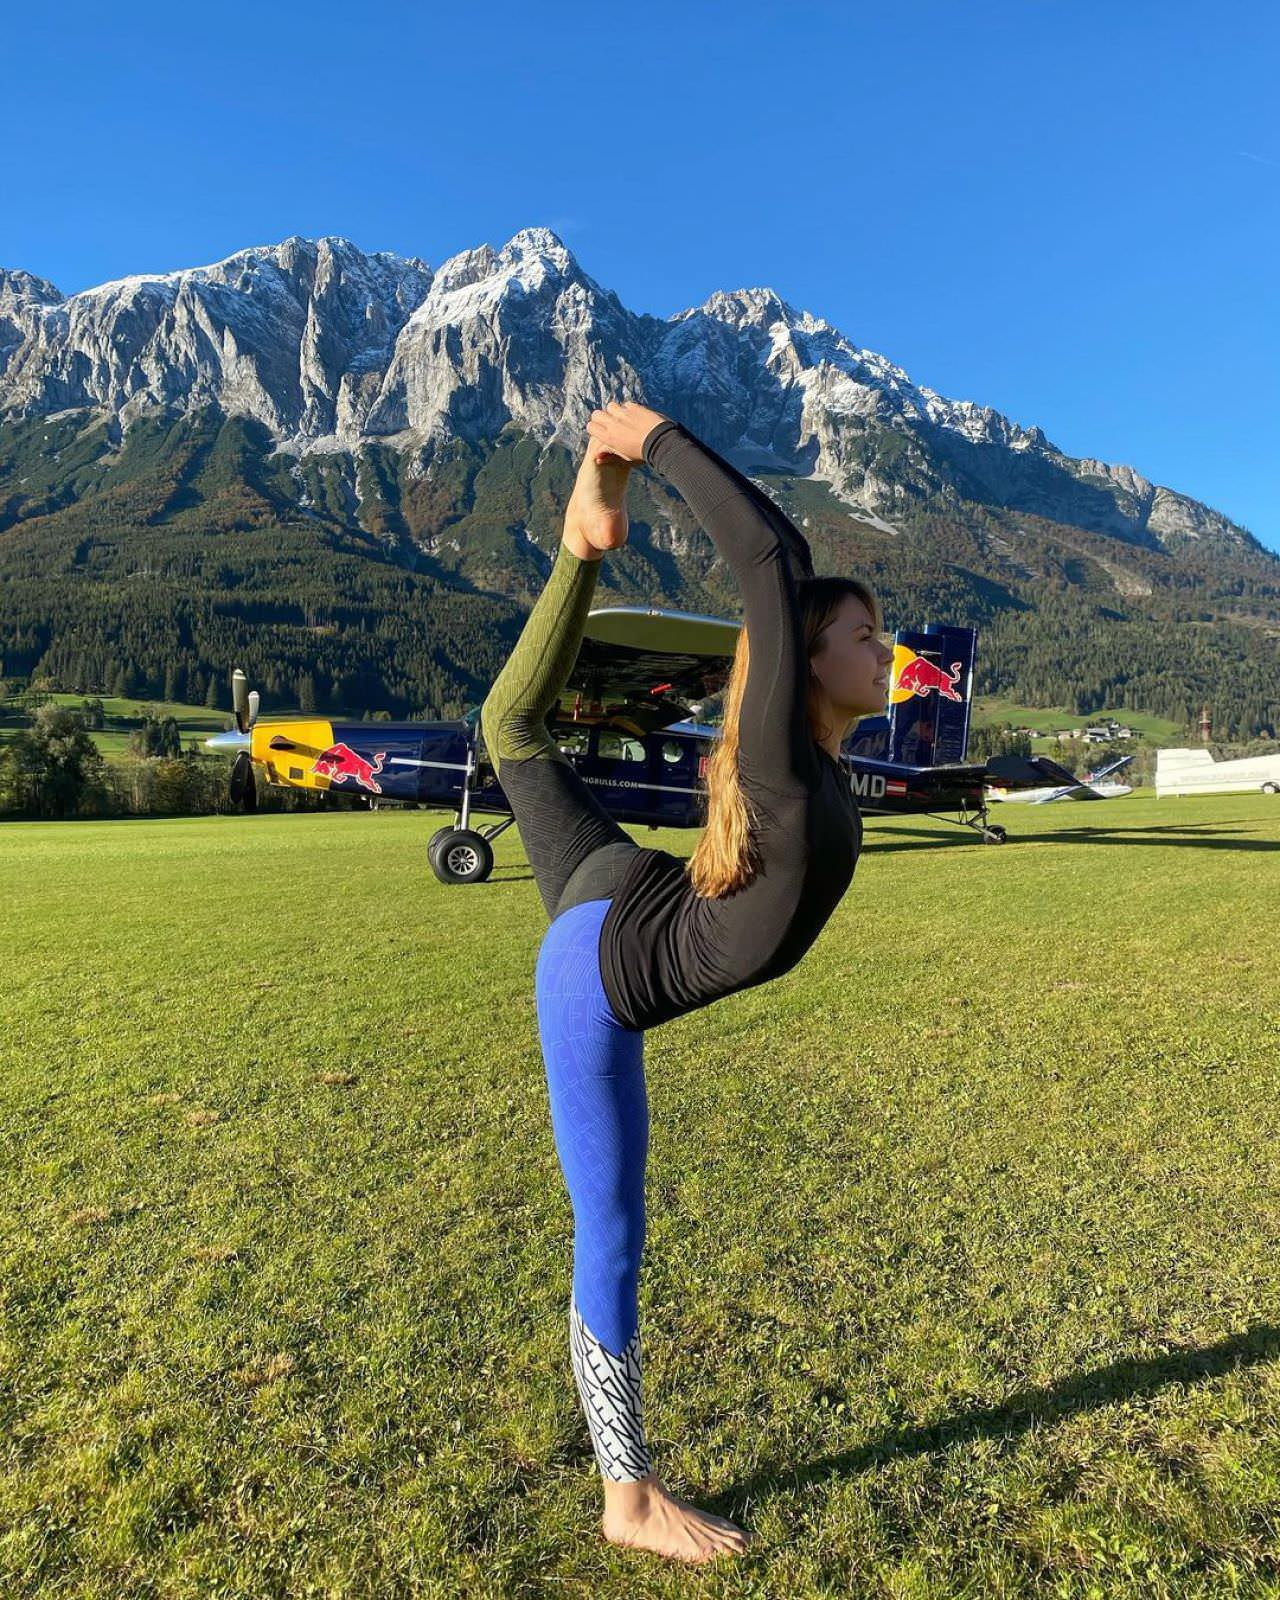 Maja Kuczynska Posing while Working Out and Skydiving